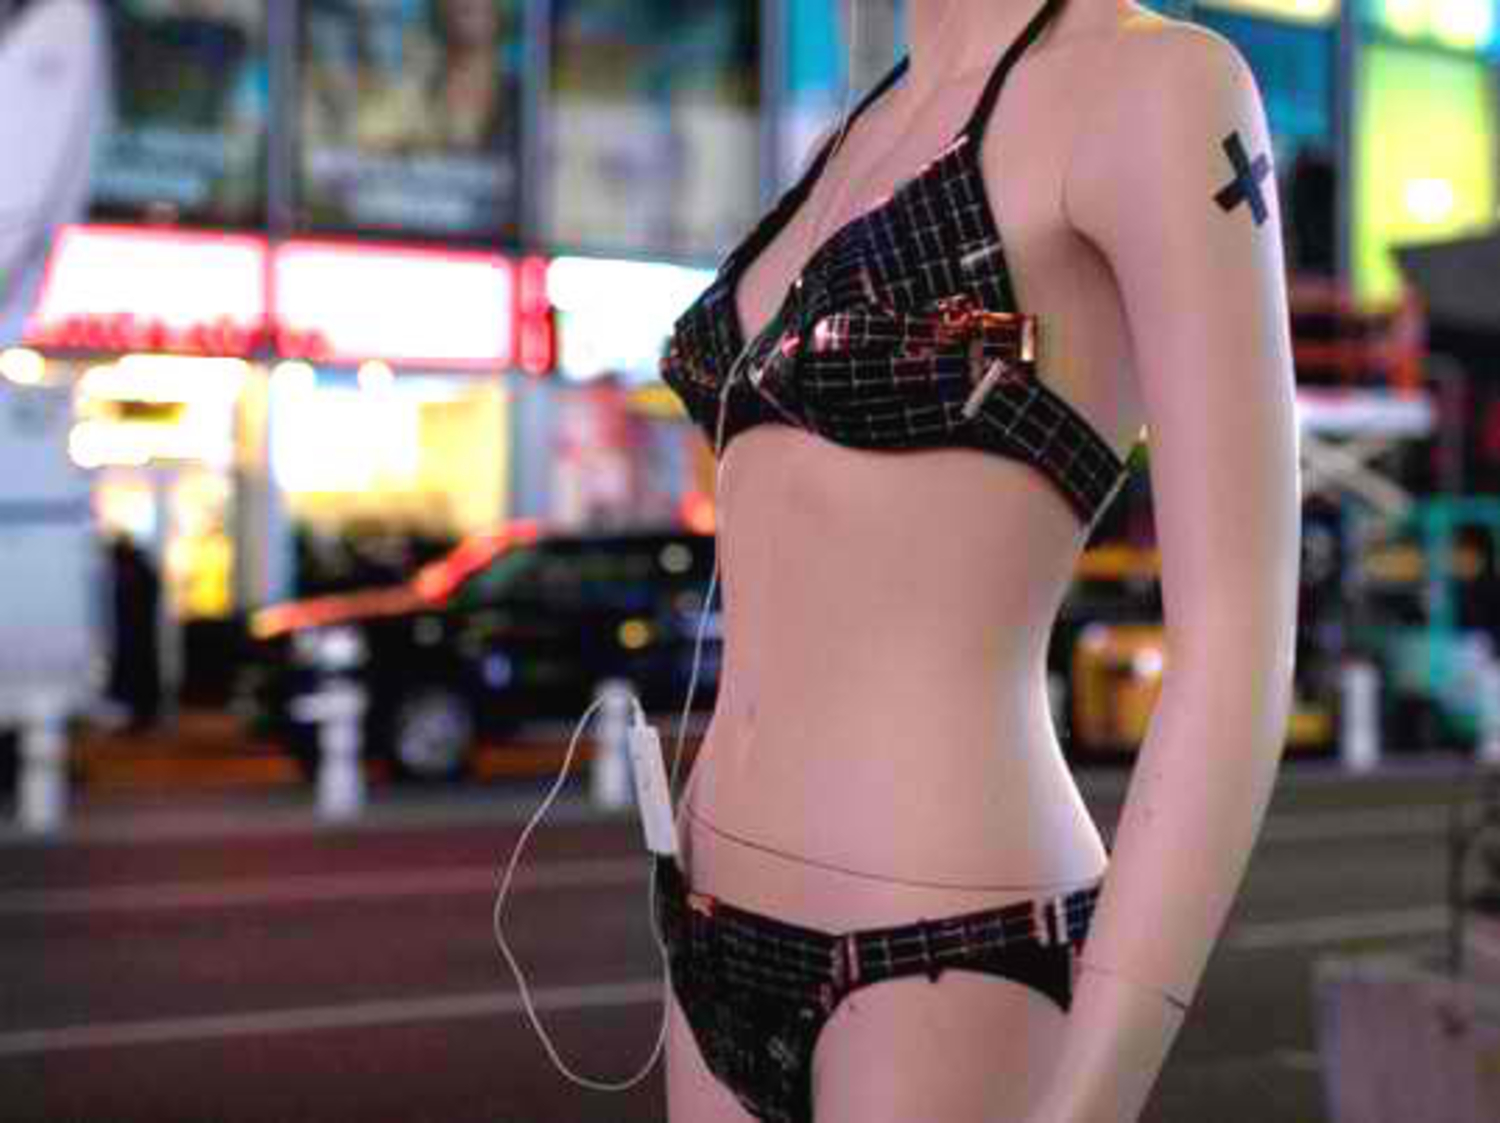 Solar Powered Bikini.jpg